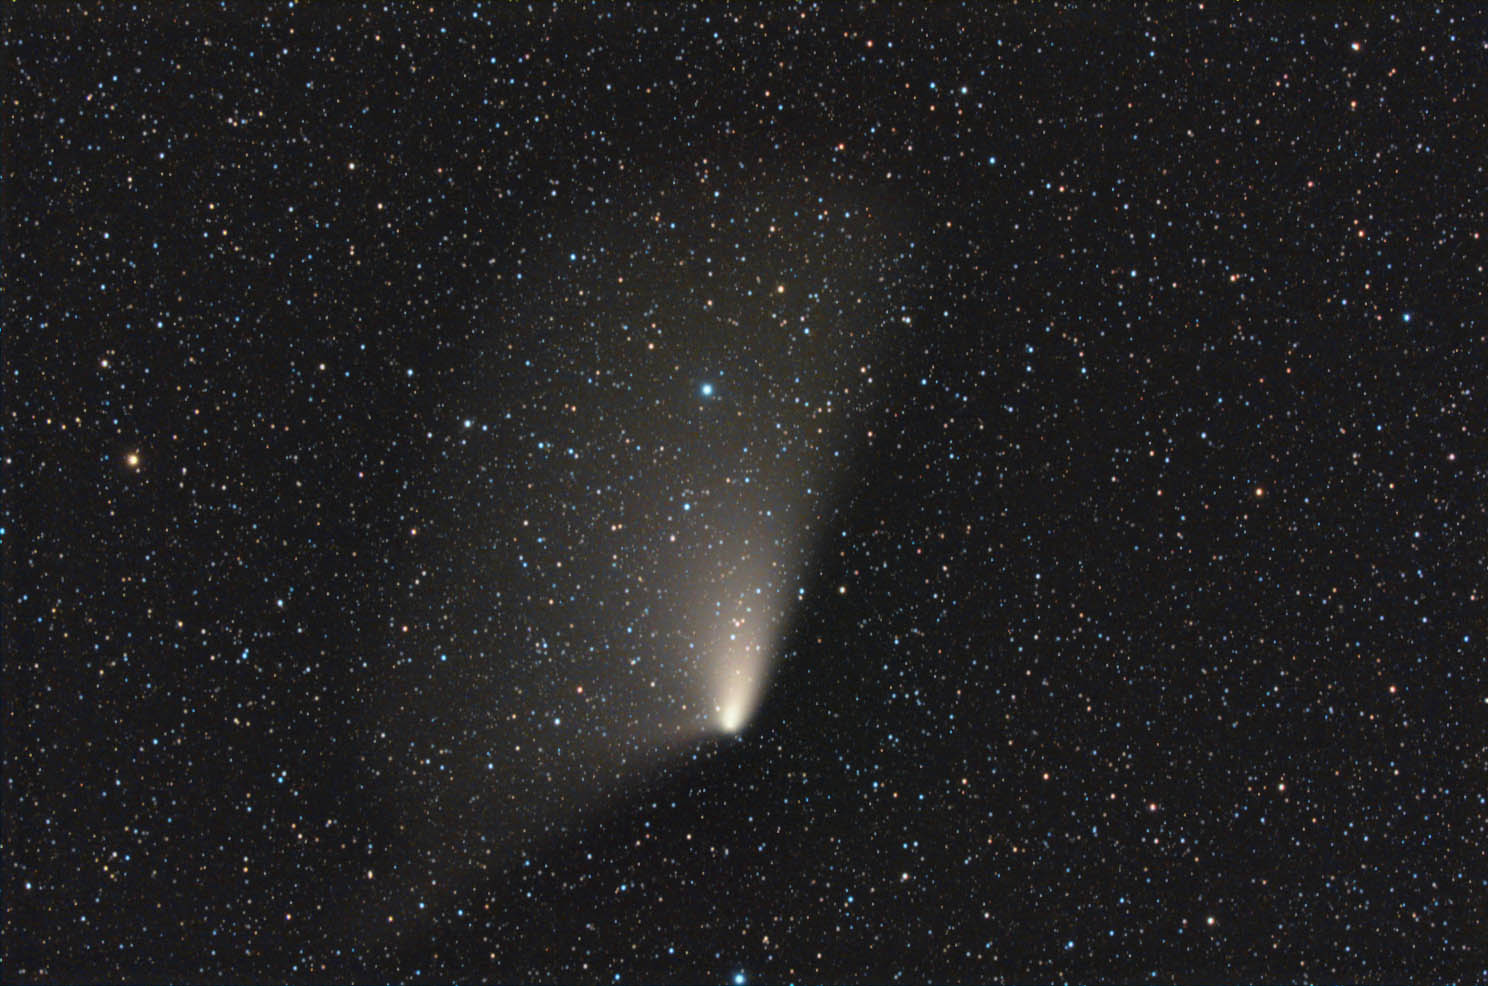 PanStarrs comet photographed in April 15 by Rolando Ligustri from Latisana: 198 KB; click on the image to enlarge at 1488x986 pixels